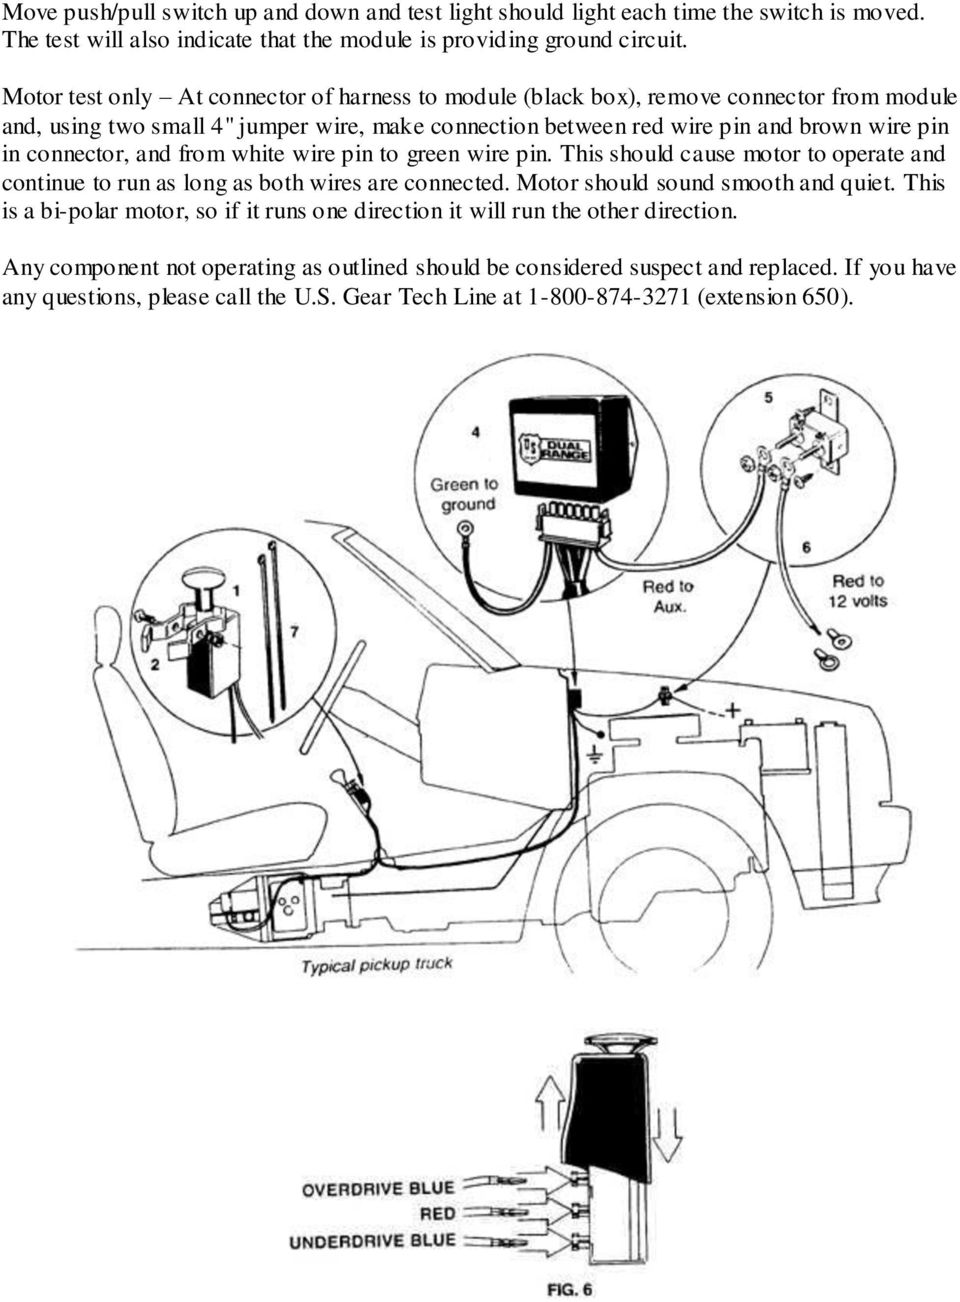 Operation Of The Us Gear Dual Range Tm Auxiliary Transmission Pdf 12 Volt Push Pull Switch Wiring Diagram And From White Wire Pin To Green This Should Cause Motor Operate Timing Diagrams